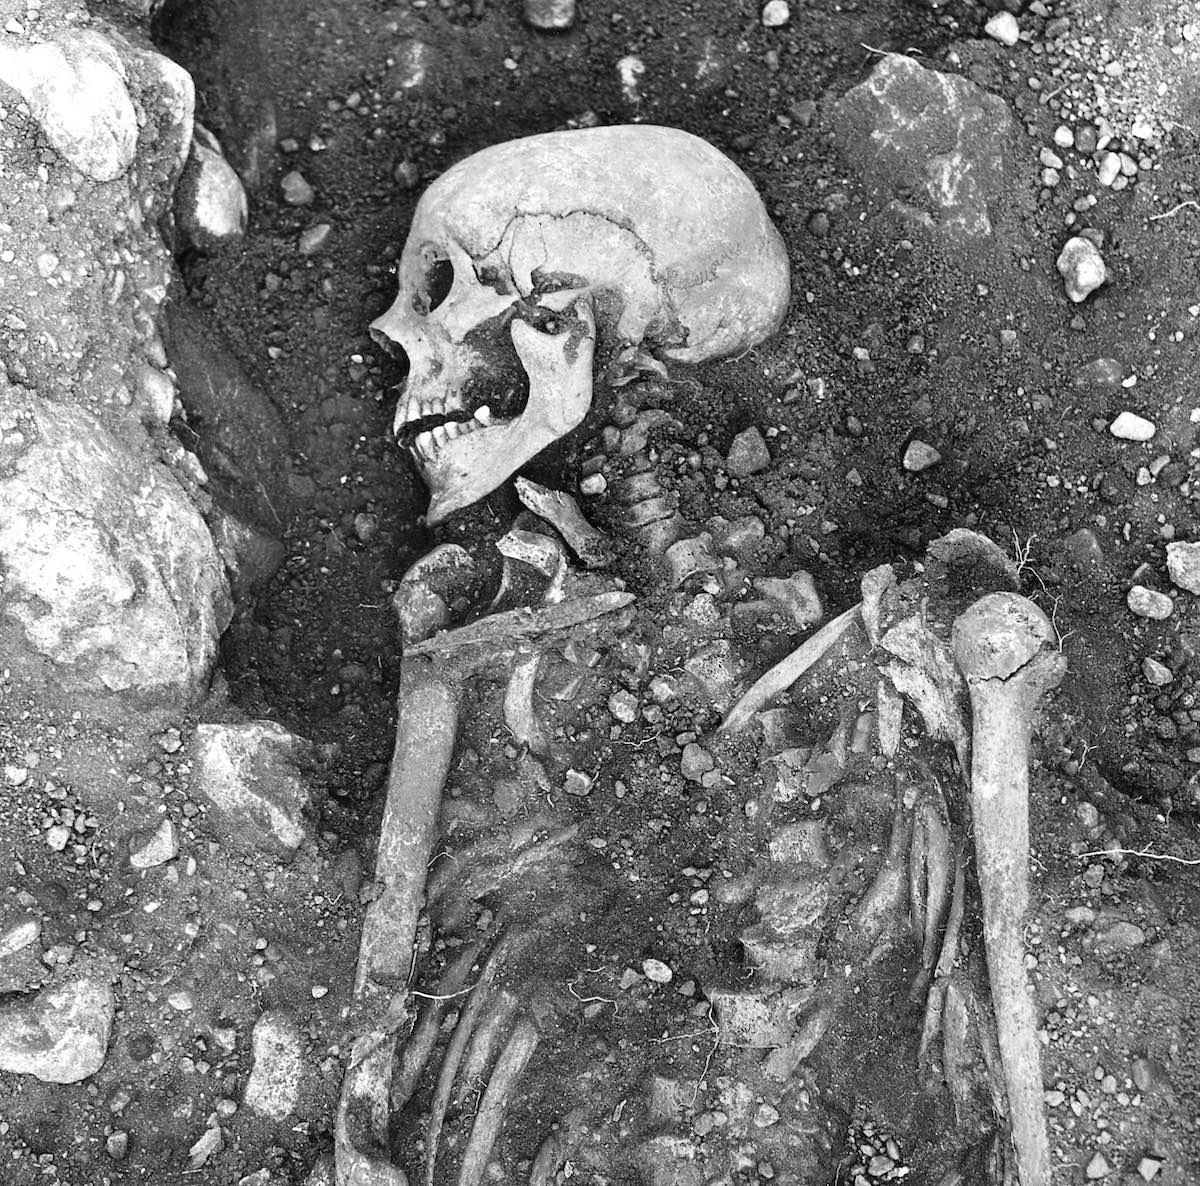 Viking skeleton_smallpox